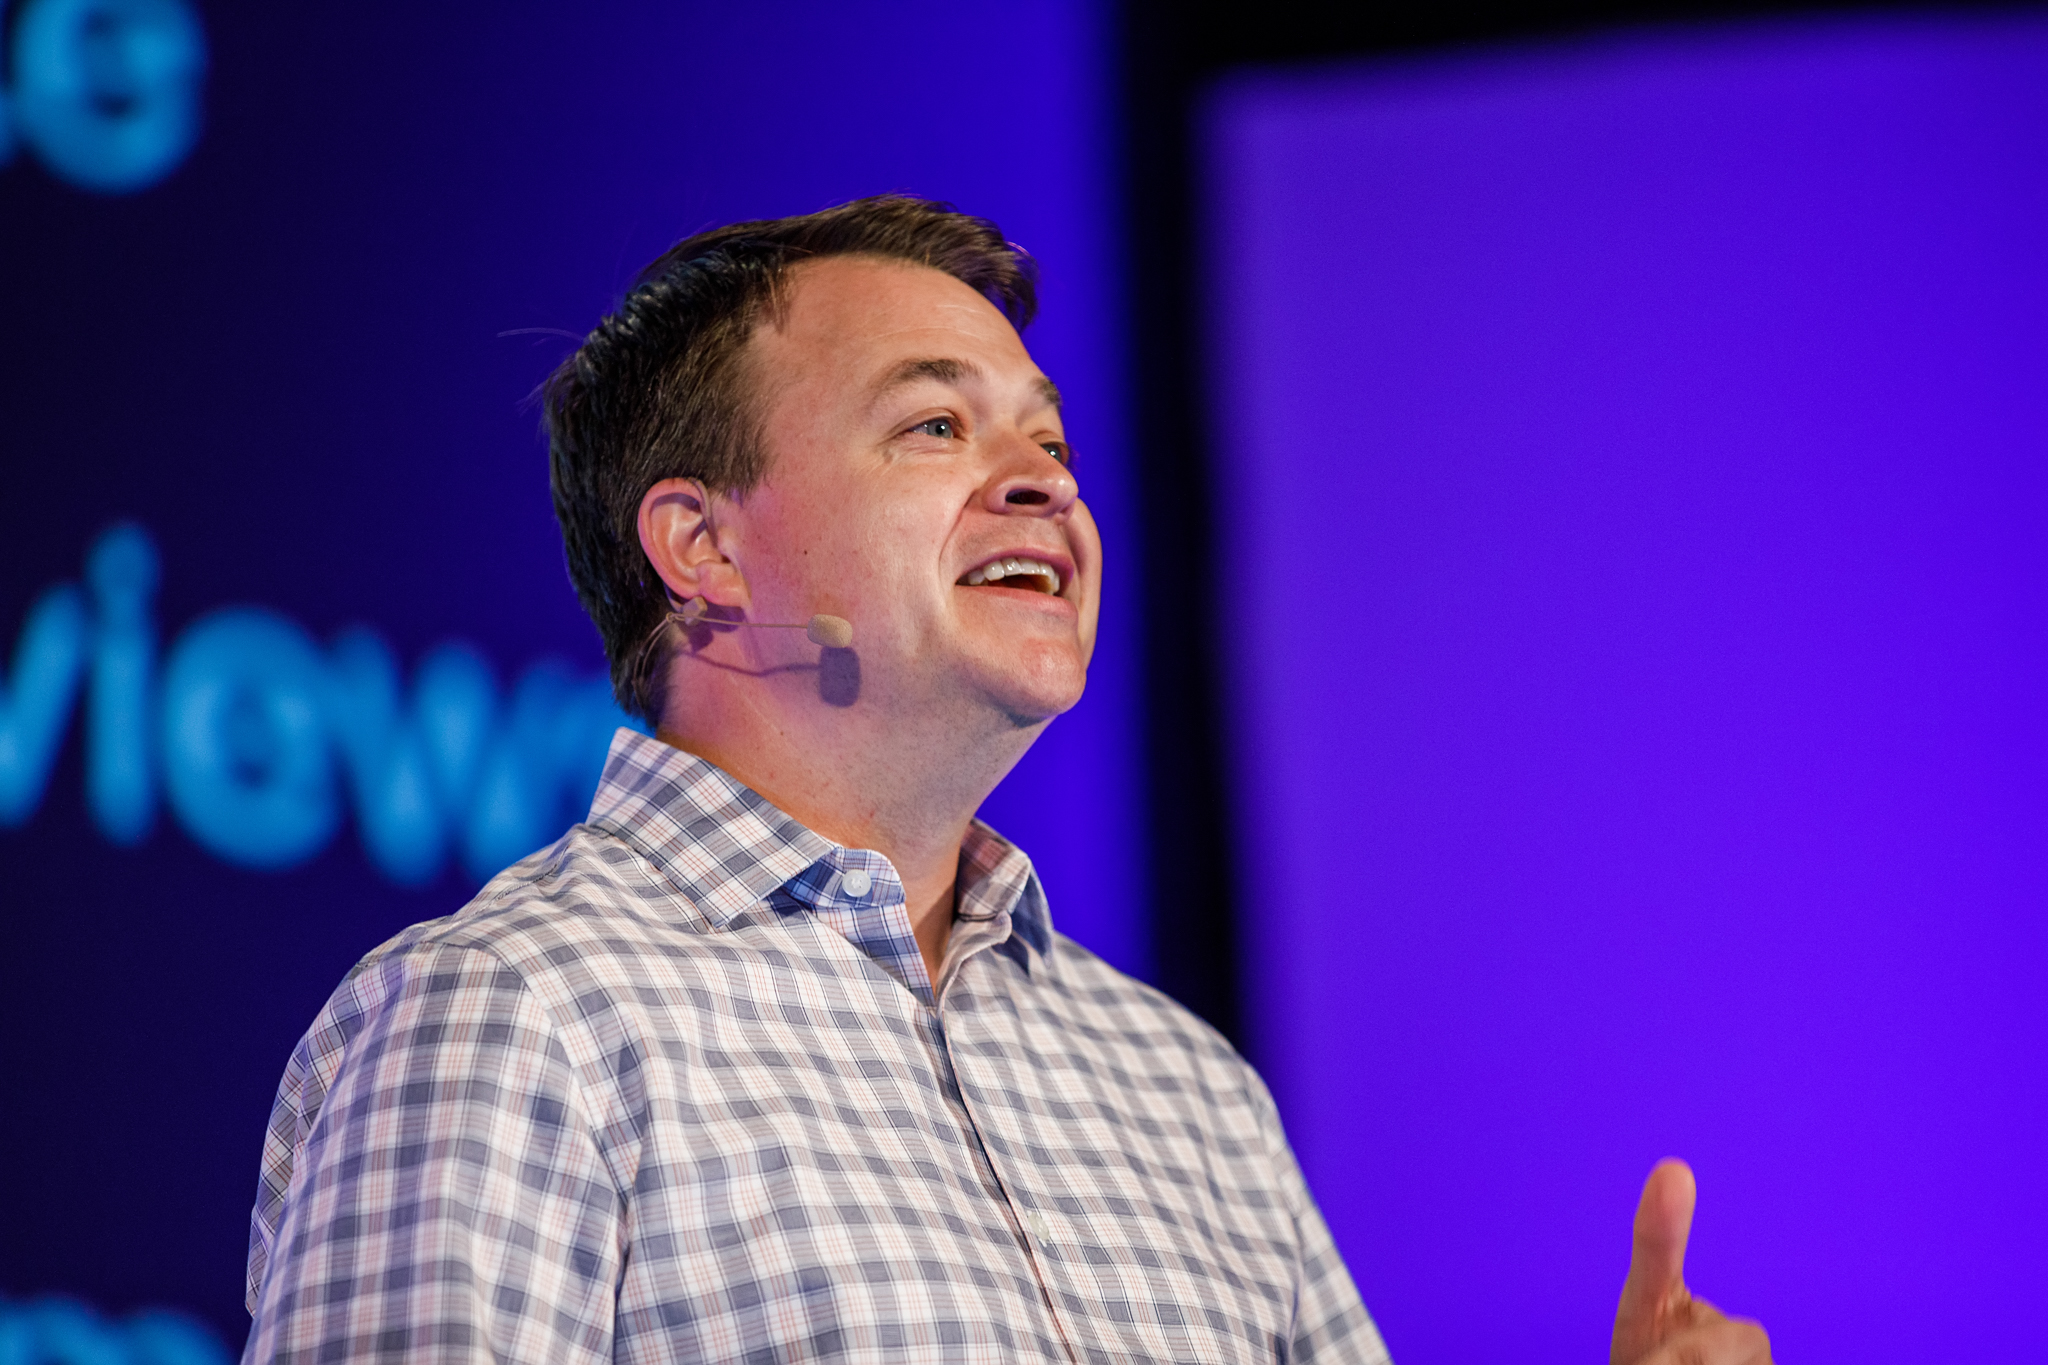 Mike Porath - The Mighty - CMX Summit 2019